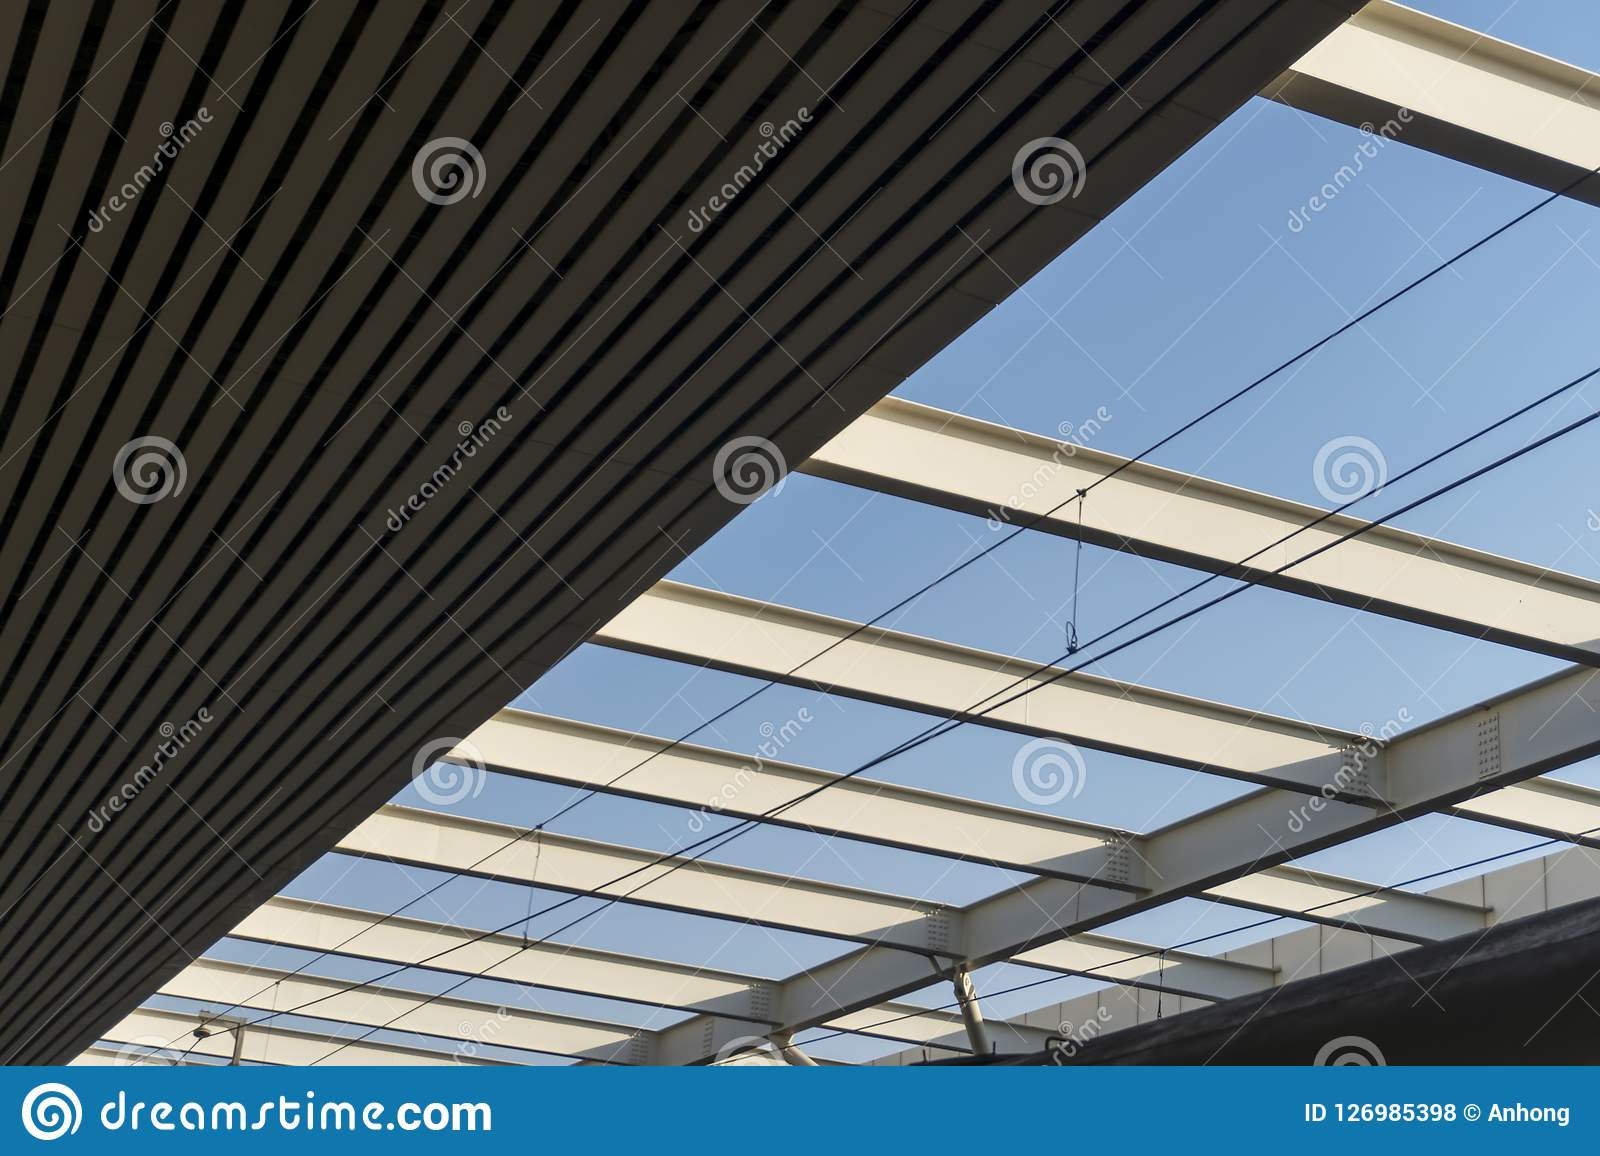 Ceiling Of A Industrial Production Building Stock Photo Image